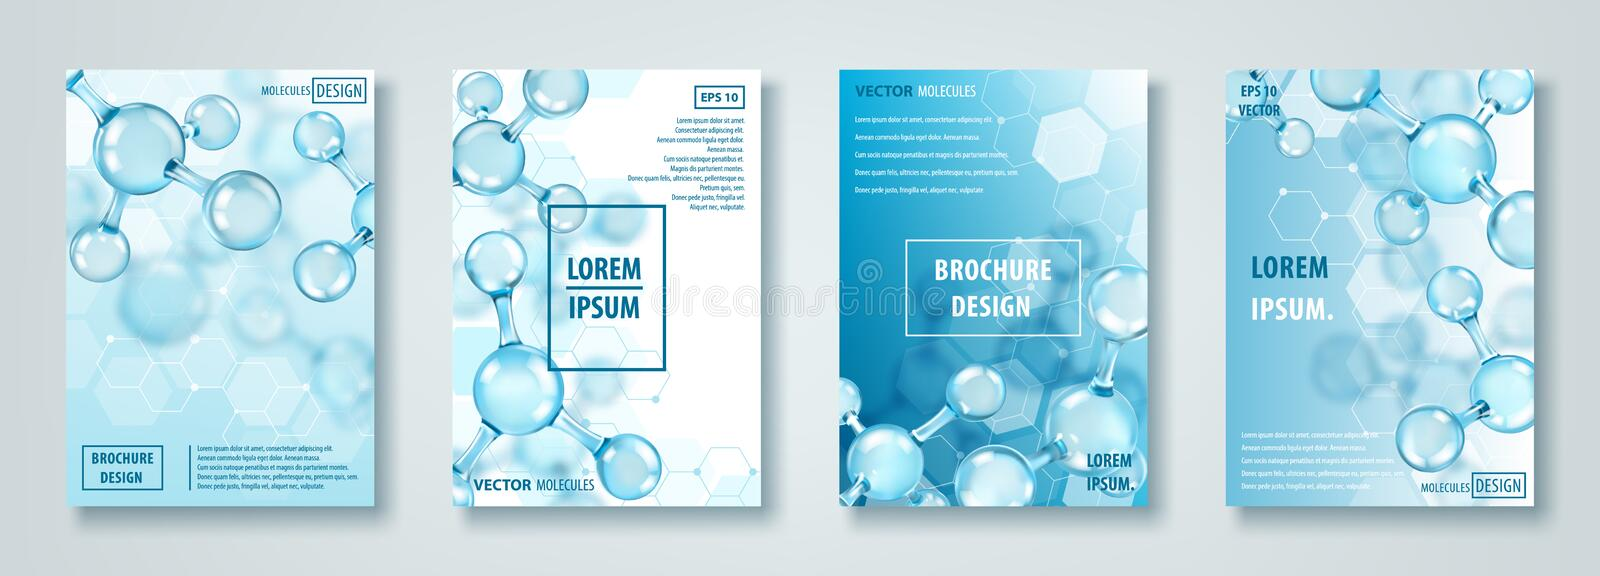 Banners or brochures with abstract molecules design. Atoms. Medical background for banner or flyer stock illustration